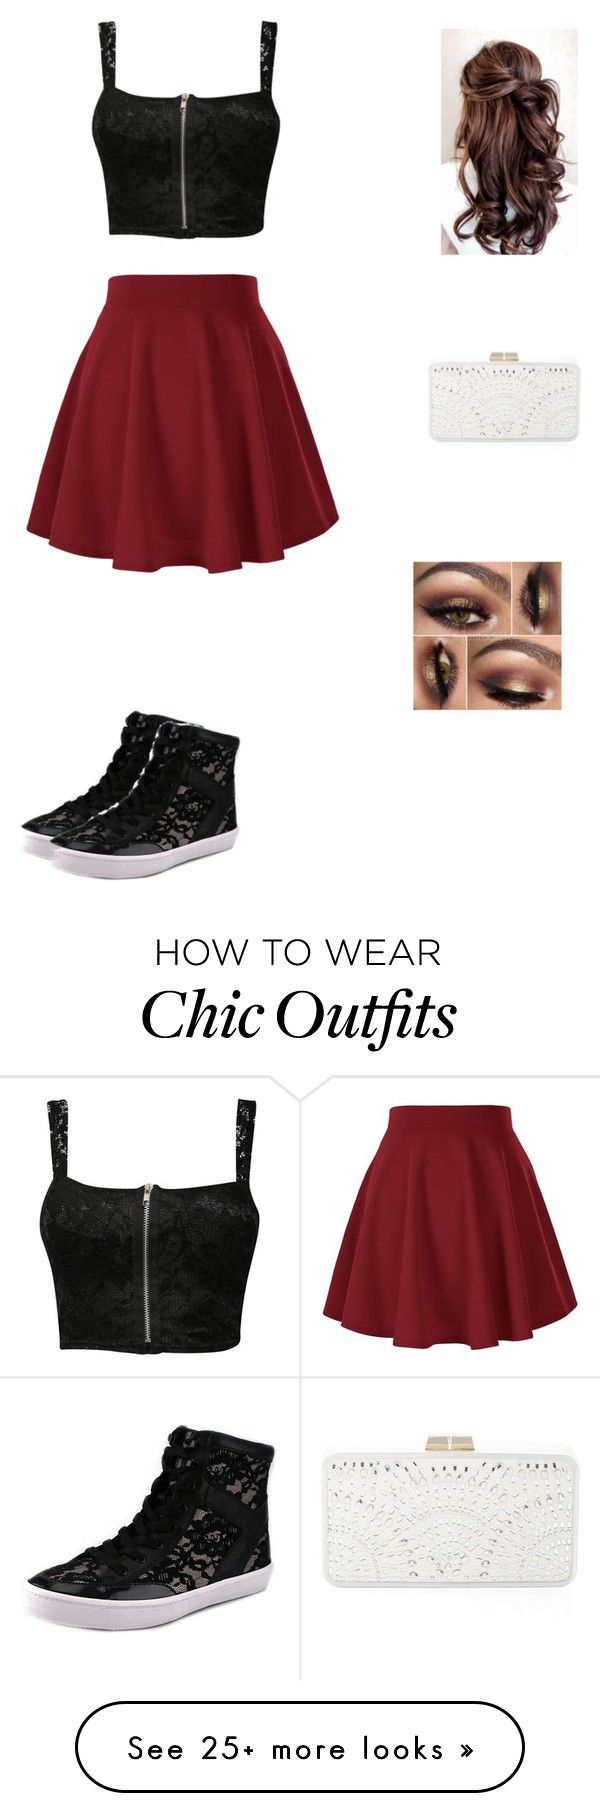 best outfits images on pinterest cute outfits school outfits